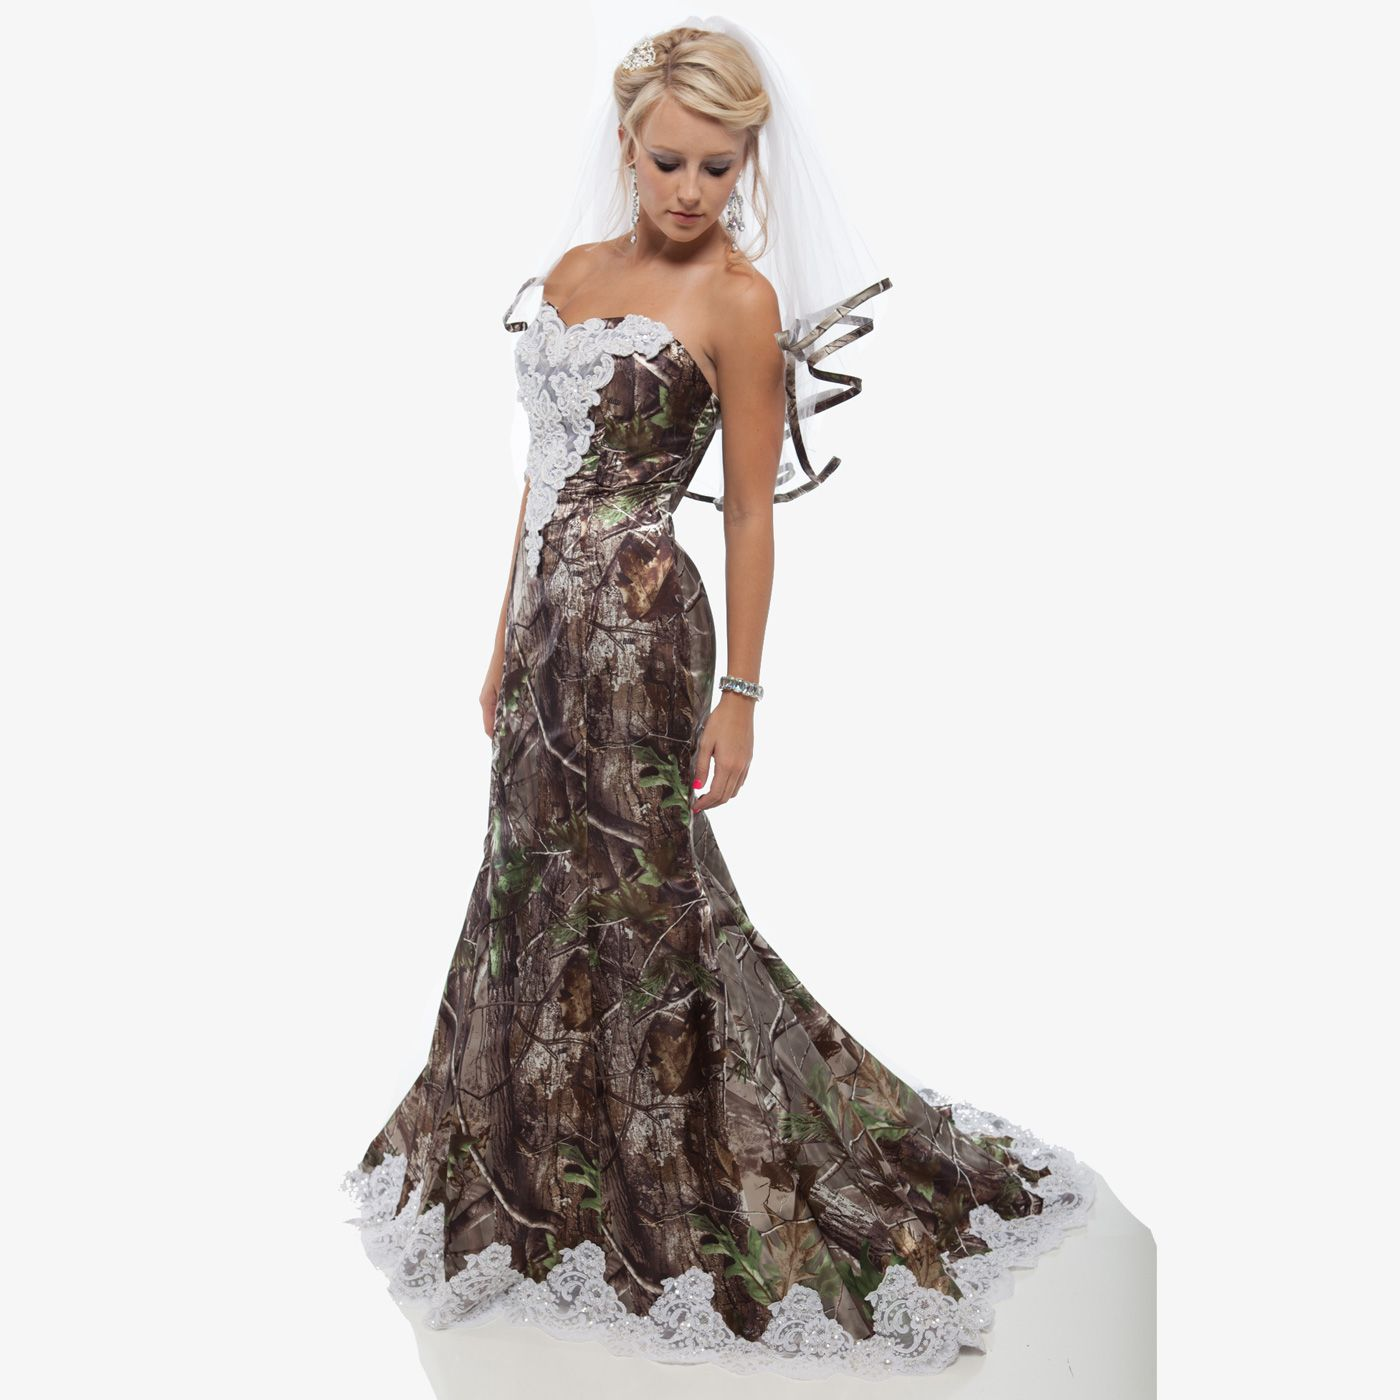 Realtree Camo Mermaid Wedding Gown With Lace And Sweep Train Camo Wedding Dresses Camouflage Wedding Dresses Camo Wedding Dress